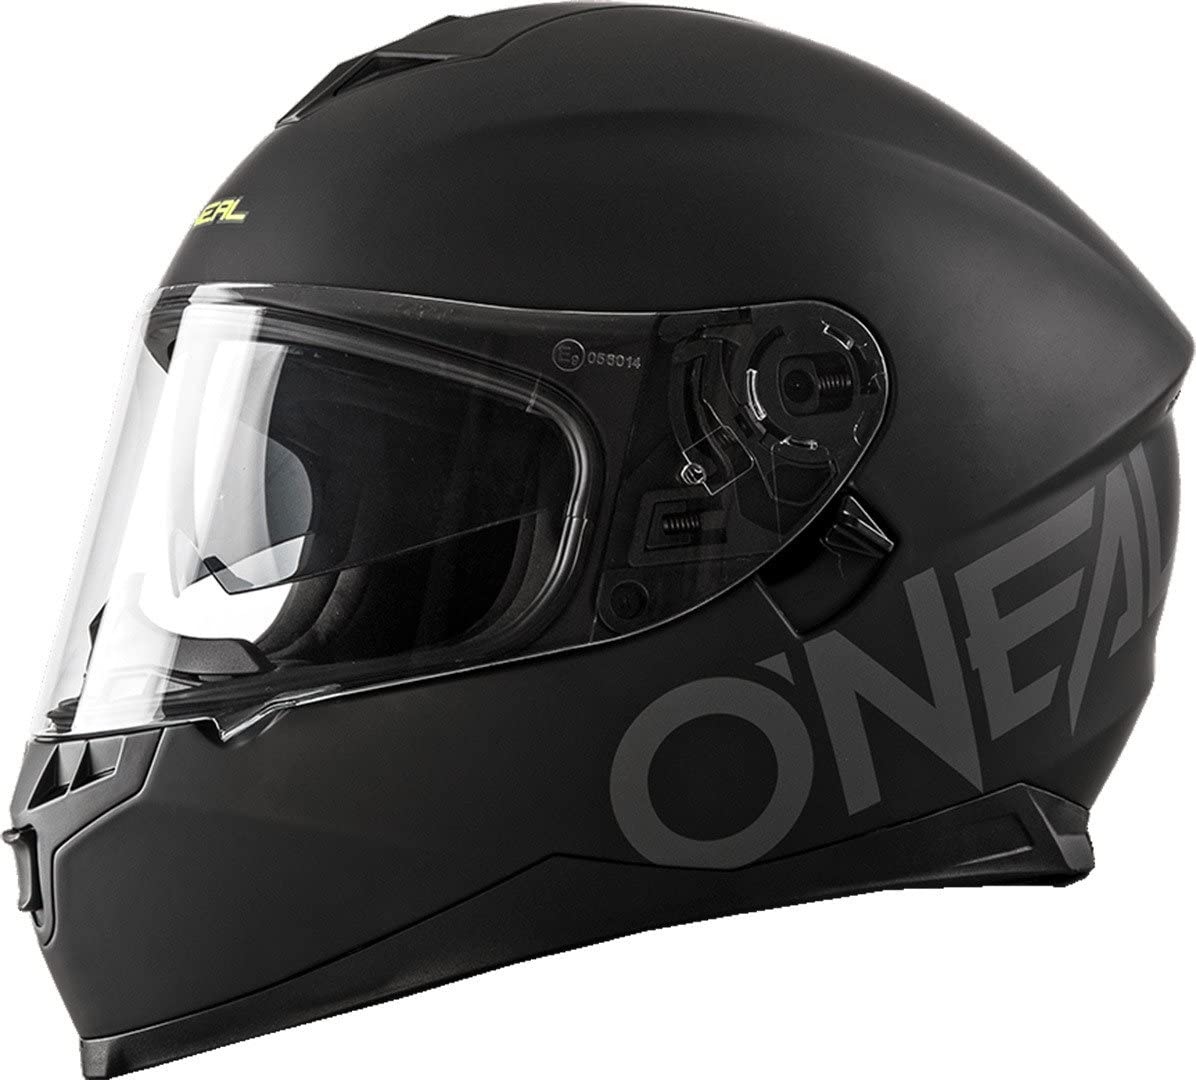 Max 90% OFF O'Neal Oneal Challenger Fixed price for sale Street Helmet XL Black Fidlock 61 Flat